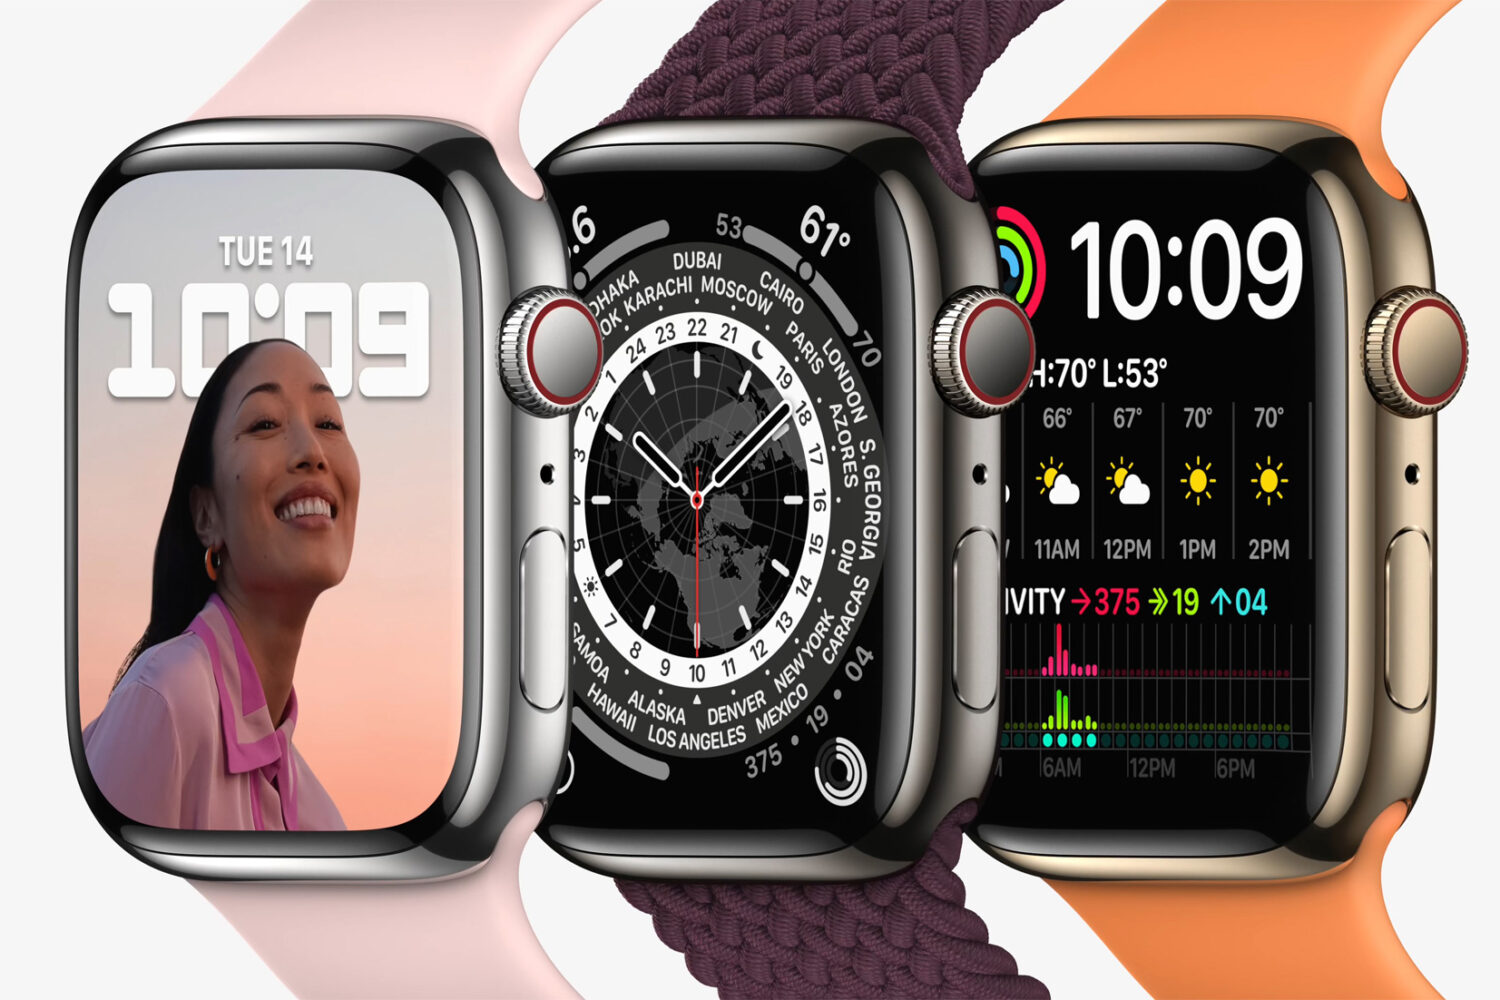 Apple Watch Series 7 lineup is arriving in stores on Friday, October 15